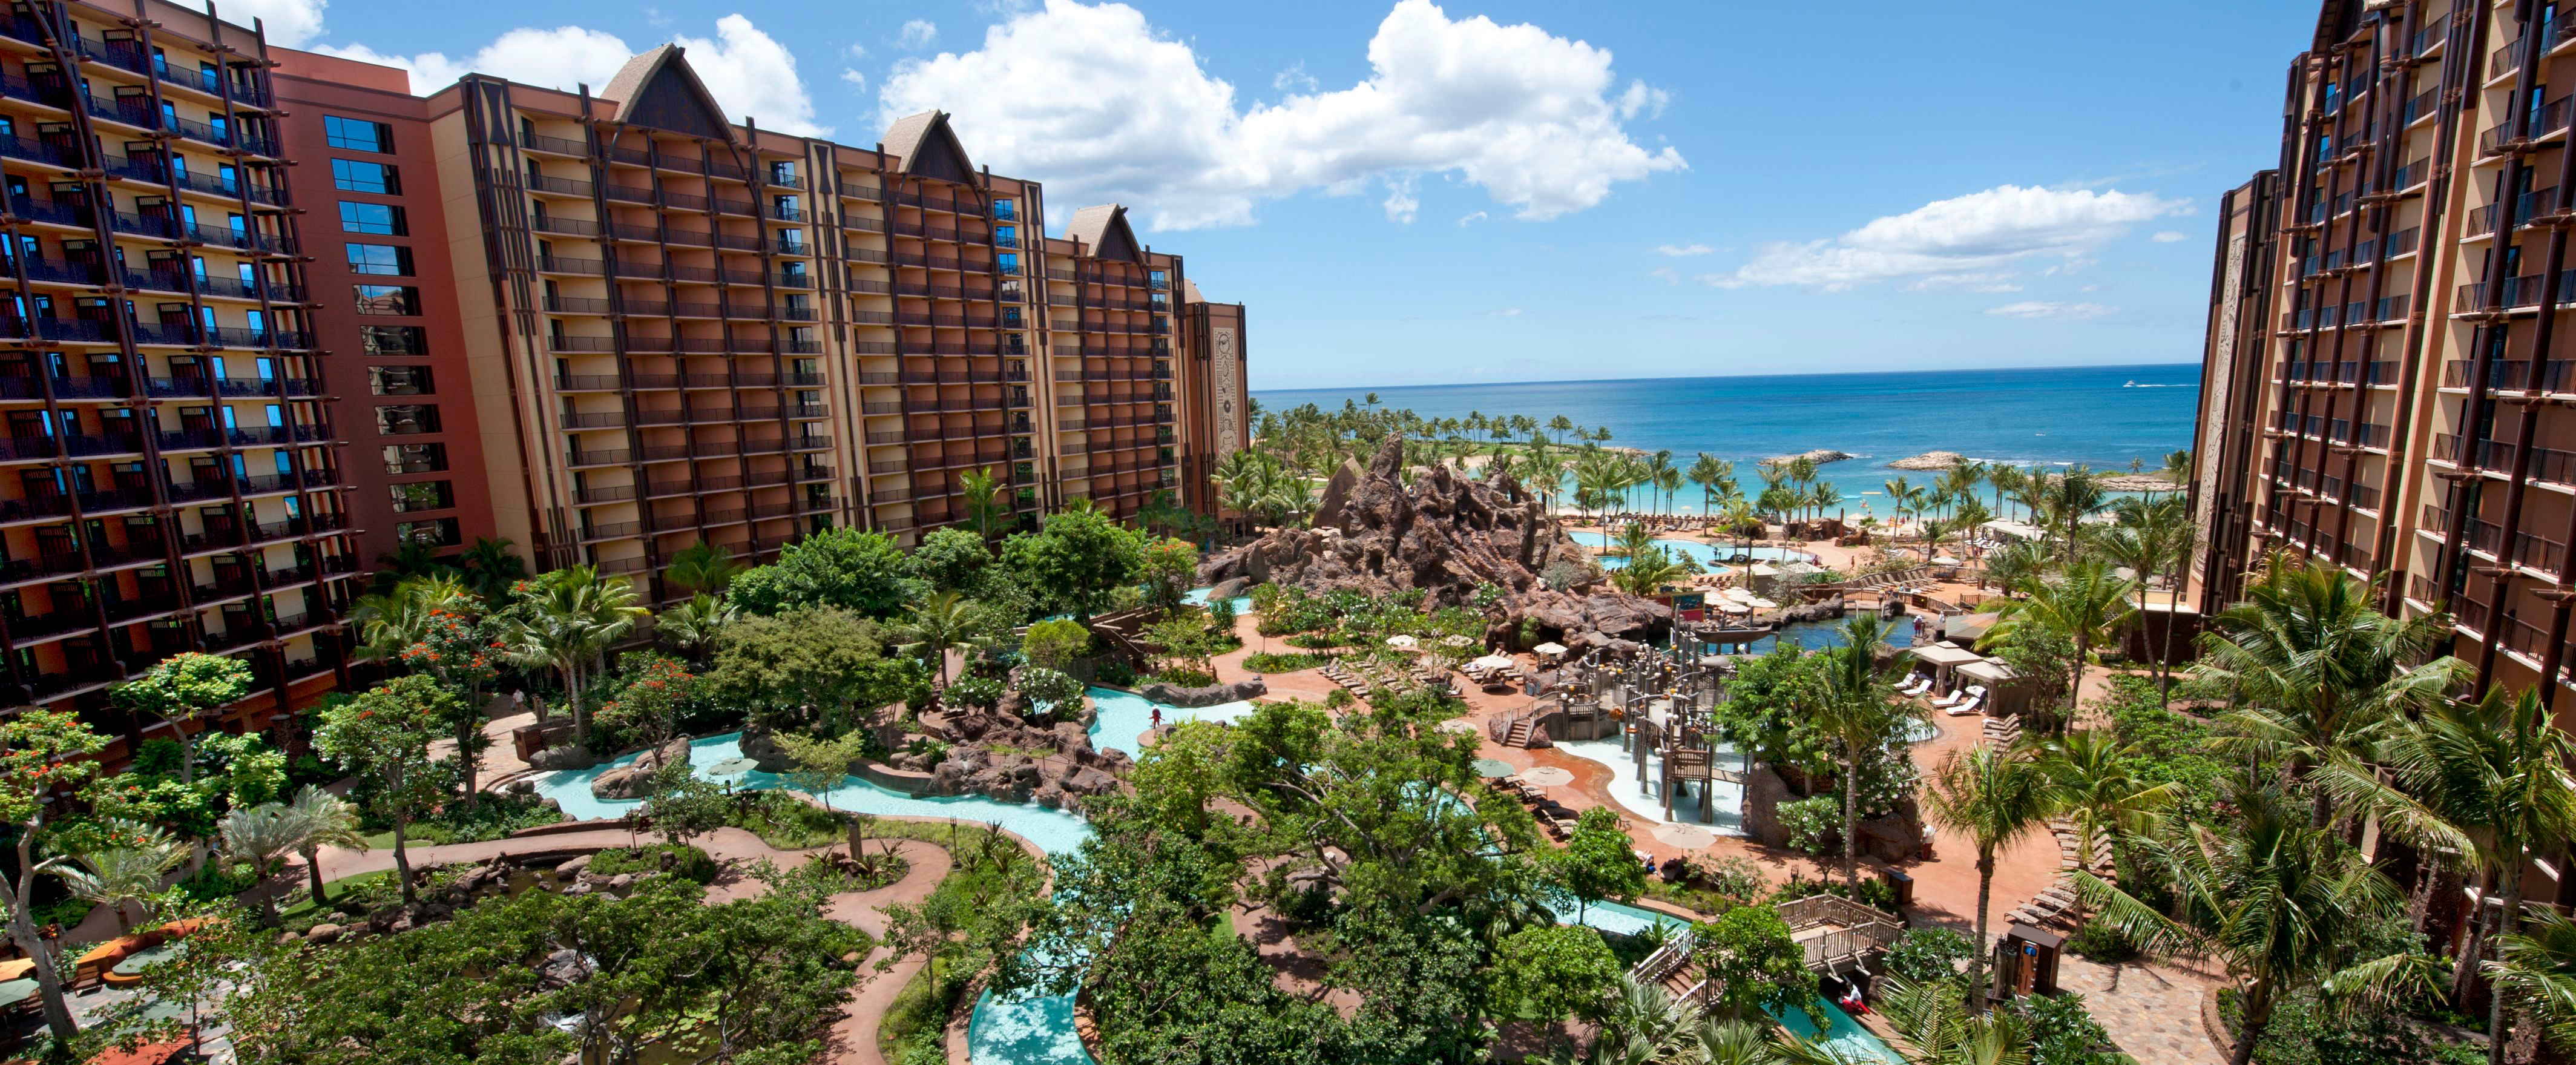 Oceanfront Resort Aulani Is Conveniently Located On Ko